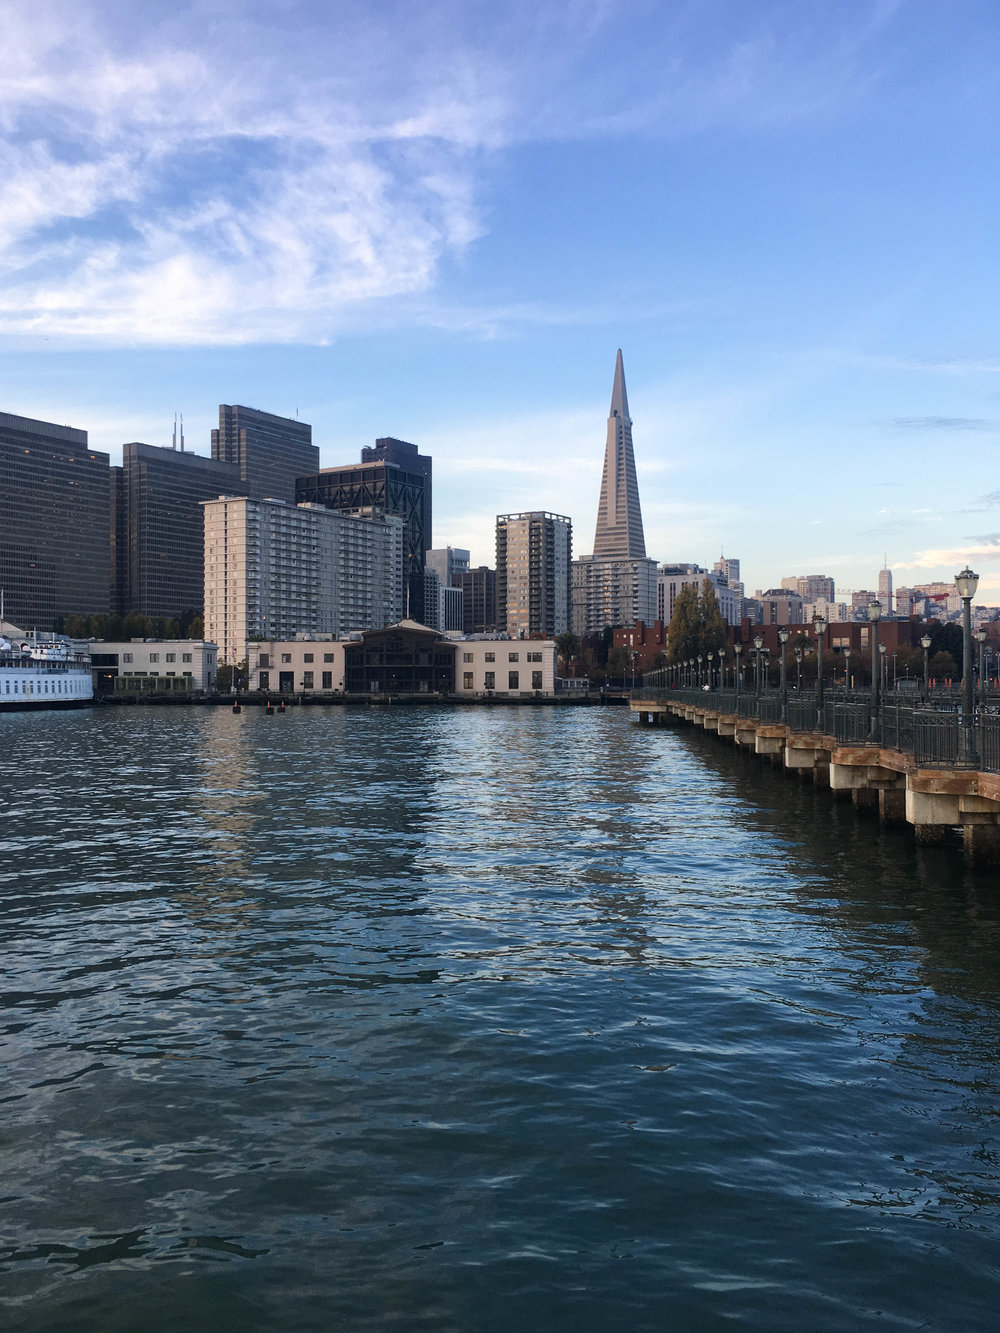 "<p style=""font-family:brandon-grotesque;font-weight:500; font-size:11px; text-center:left; color:light grey;letter-spacing: 1px"">OCTOBER 8, 2017 • FROM THE PIER • 📍 San Francisco, CA</p>"